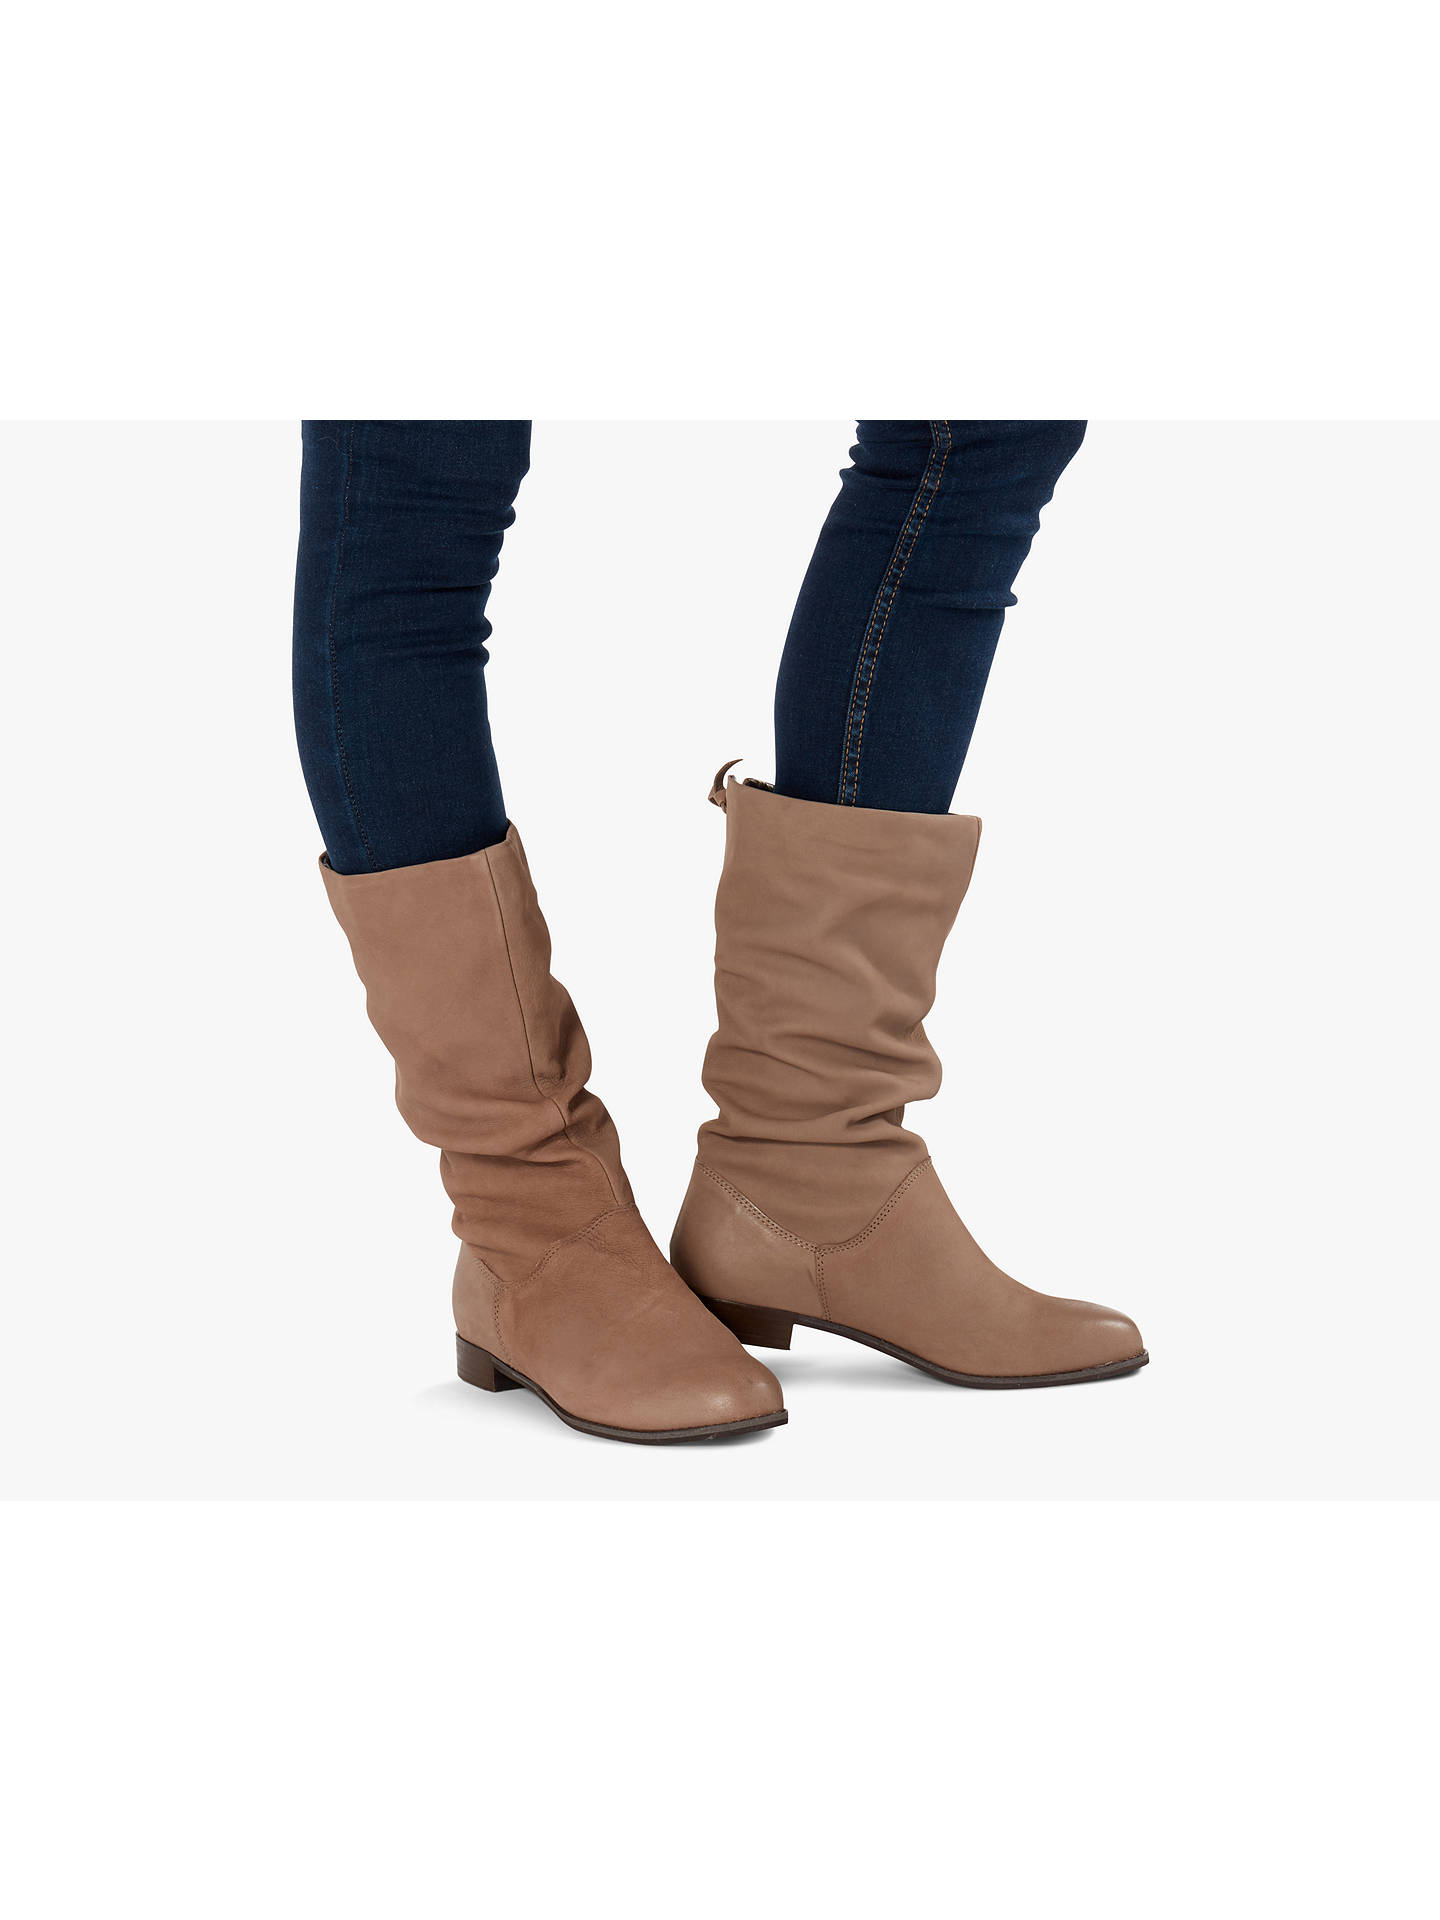 7164a184bd1ae ... Buy Dune Wide Fit Rosalindd Boots, Taupe Leather, 3 Online at  johnlewis.com ...